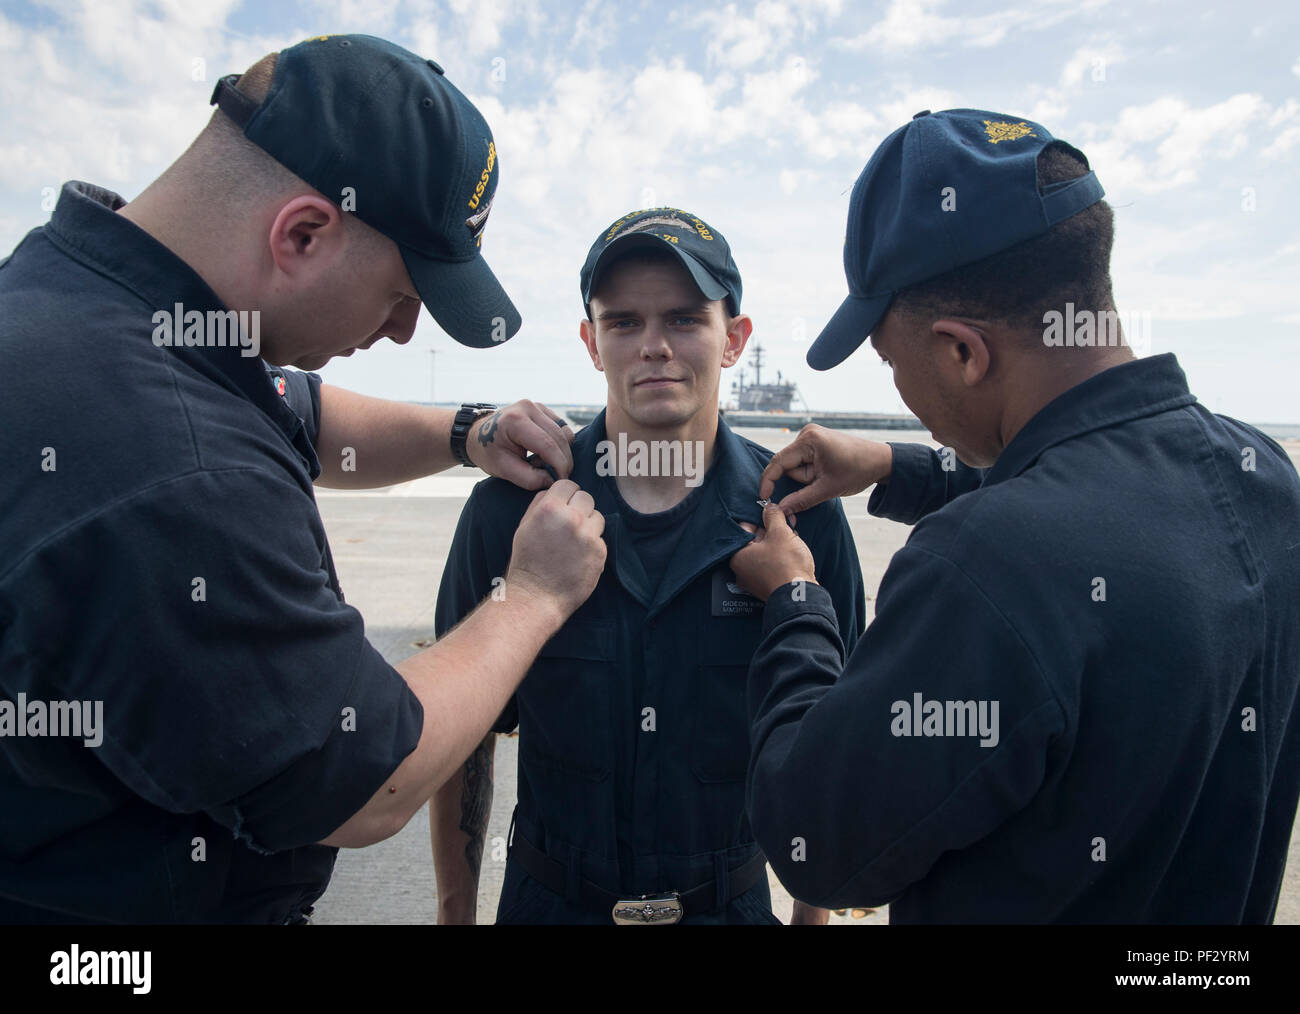 NORFOLK, Va. (June 15, 2018) - Machinist Mate (Nuclear) 2nd Class Gideon Kirkpatrick, from Christopher, Illinois, assigned to USS Gerald R. Ford's (CVN 78) reactor department, is pinned to his current rank during a promotion ceremony on the ship's flight deck. (U.S. Navy photo by Mass Communication Specialist 2nd Class Kiana A. Raines) - Stock Image